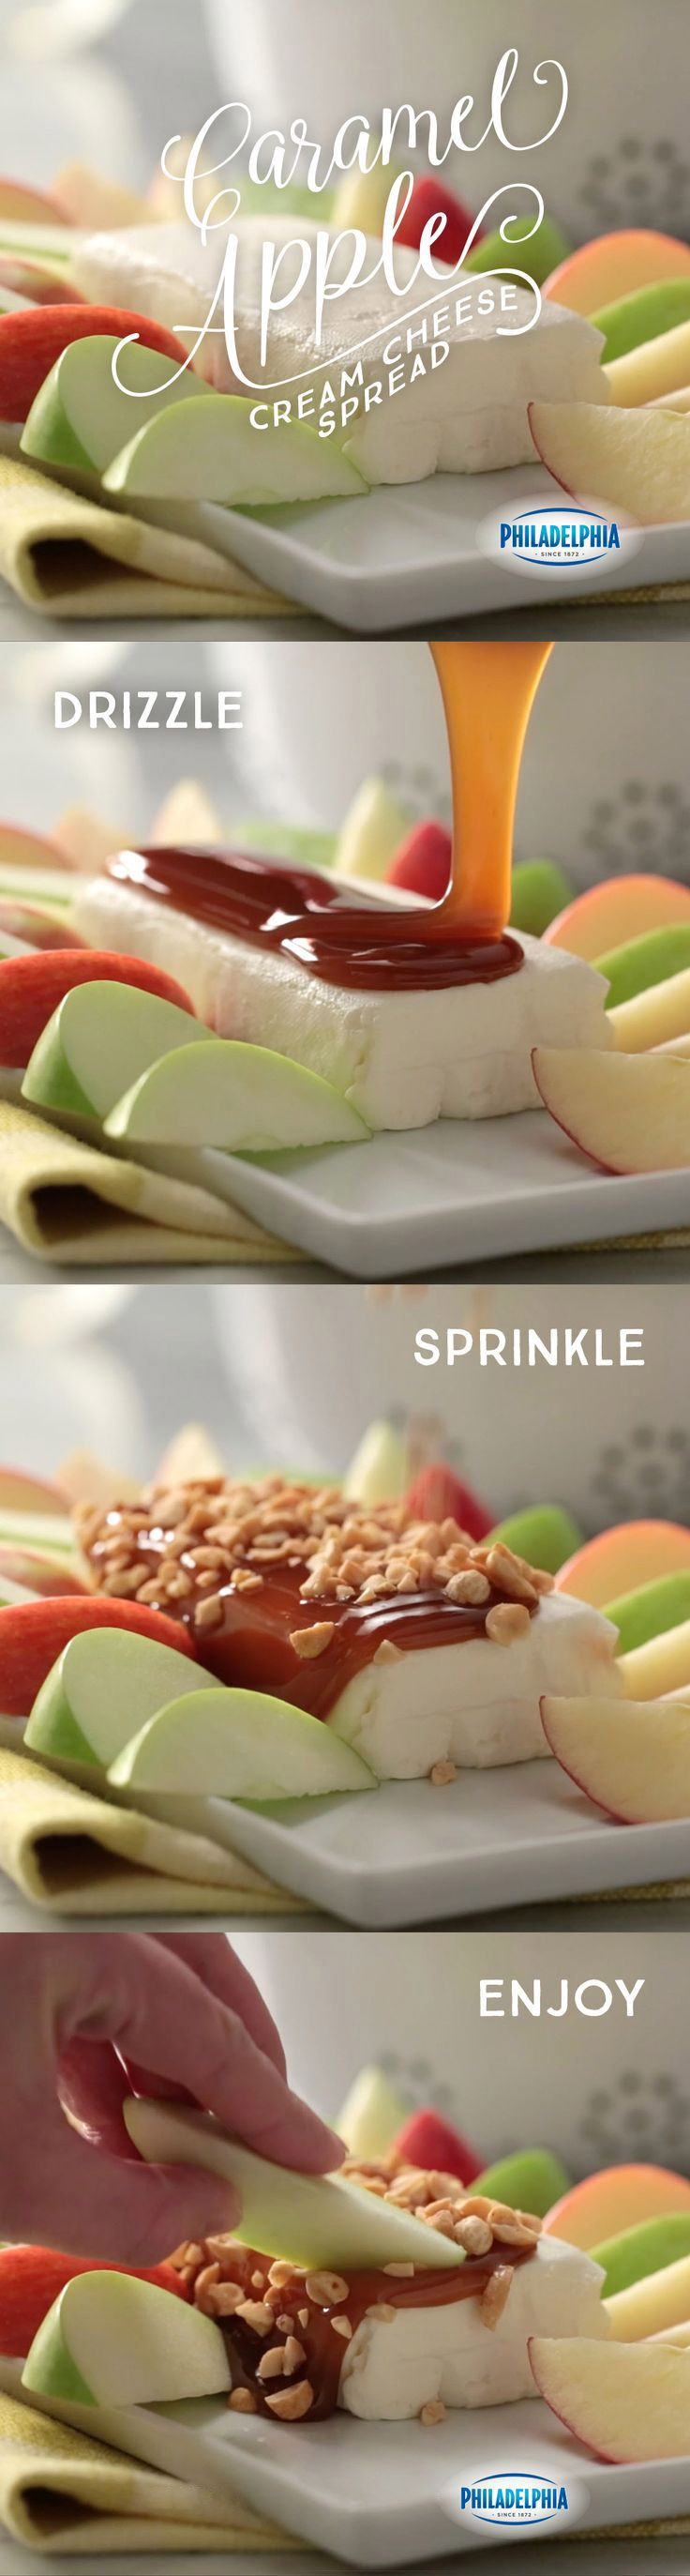 Three ingredients and three minutes is all it takes to make this fall-ready Caramel Apple-Cream Cheese Spread. Made with PHILADELPHIA Cream Cheese, caramel sauce and PLANTERS COCKTAIL Peanuts, then served with sliced apples.